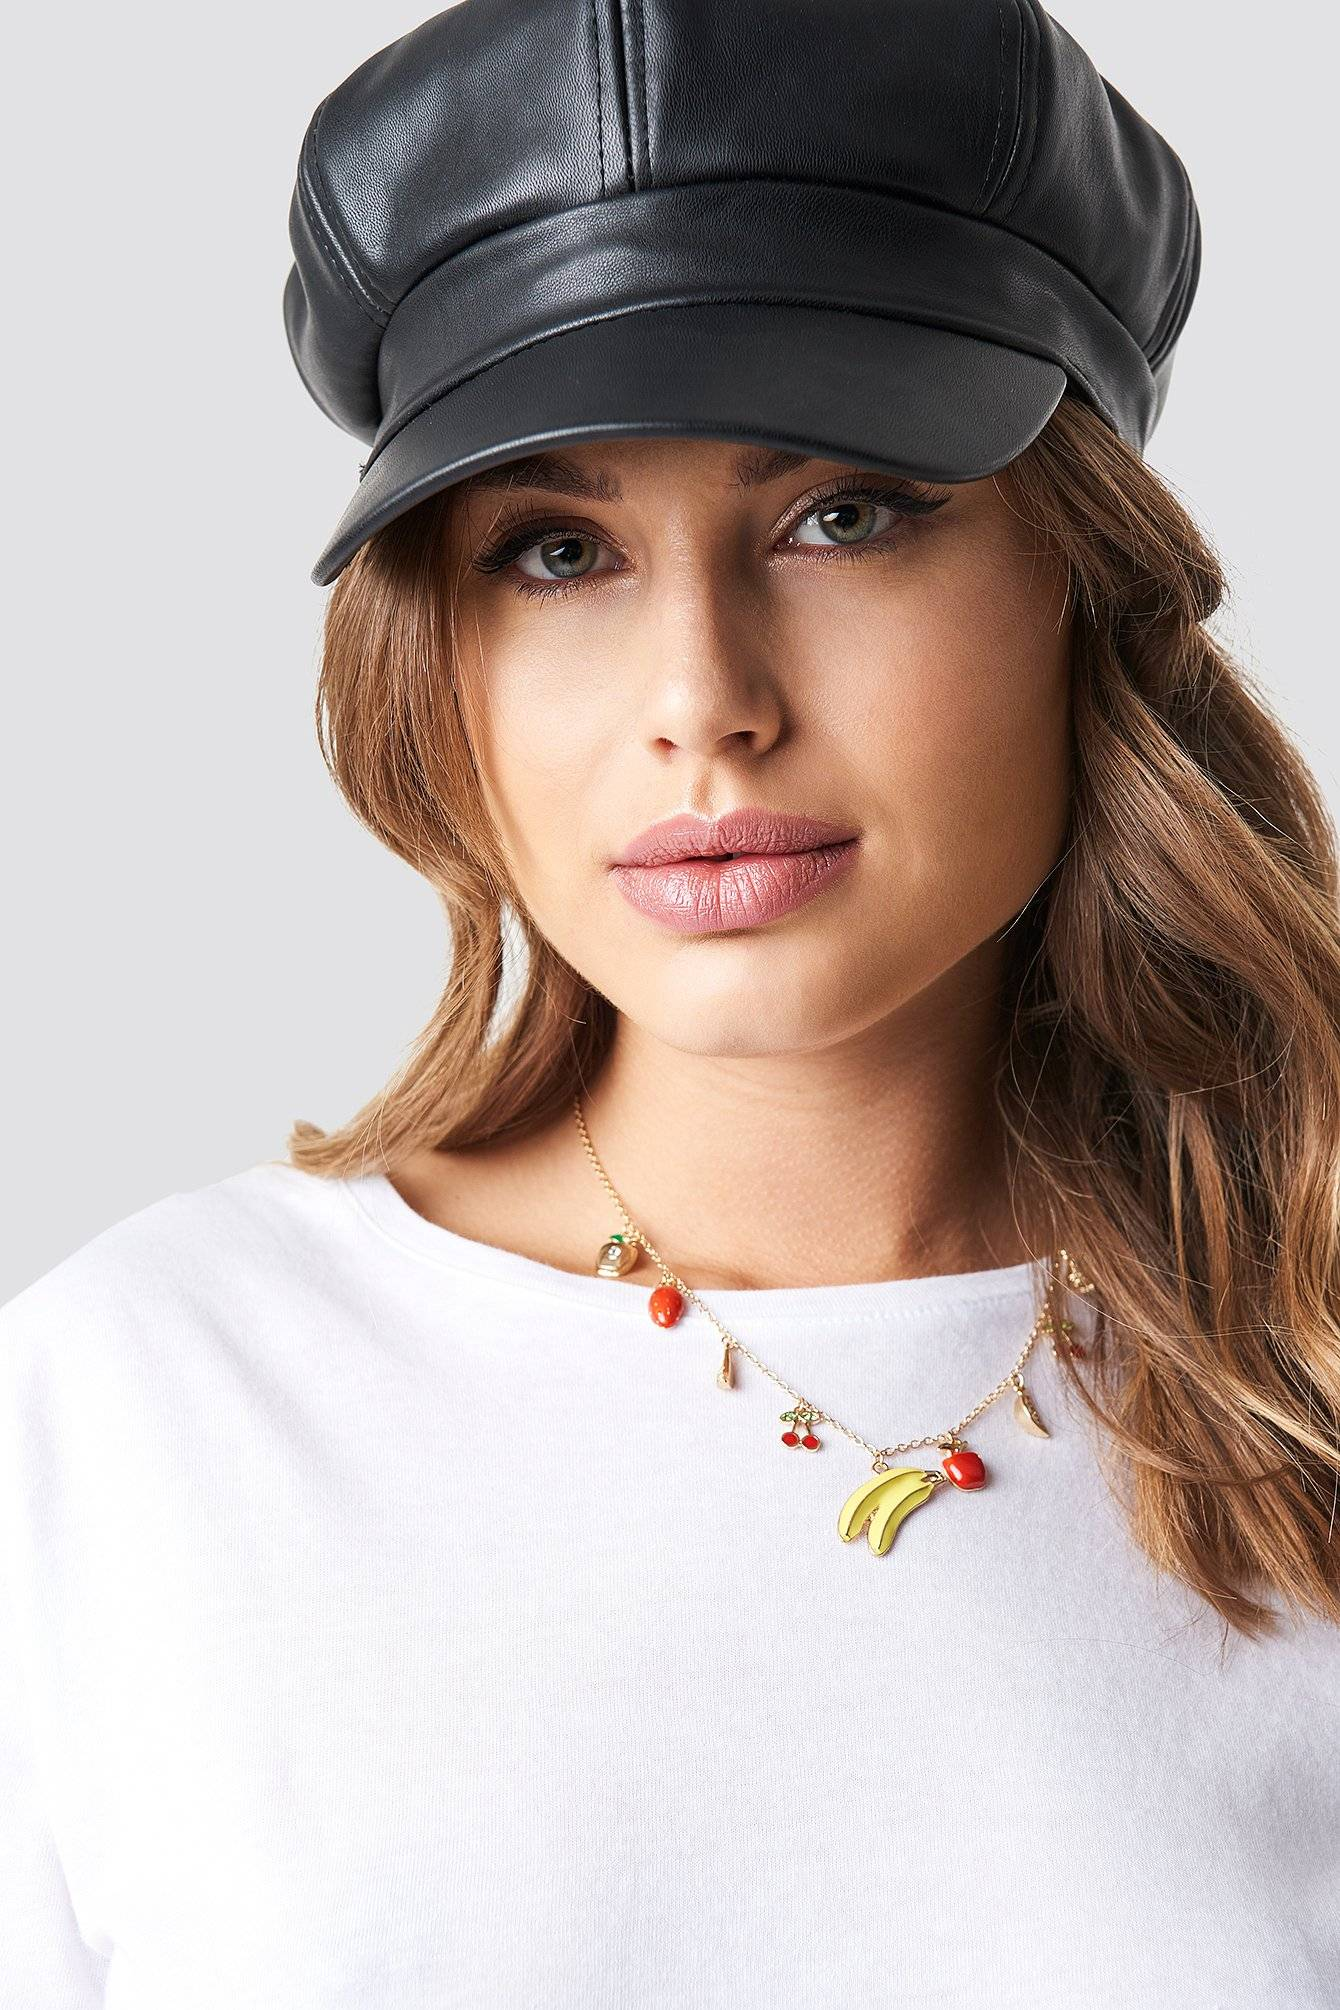 NA-KD Accessories Mixed Fruits Necklace - Gold